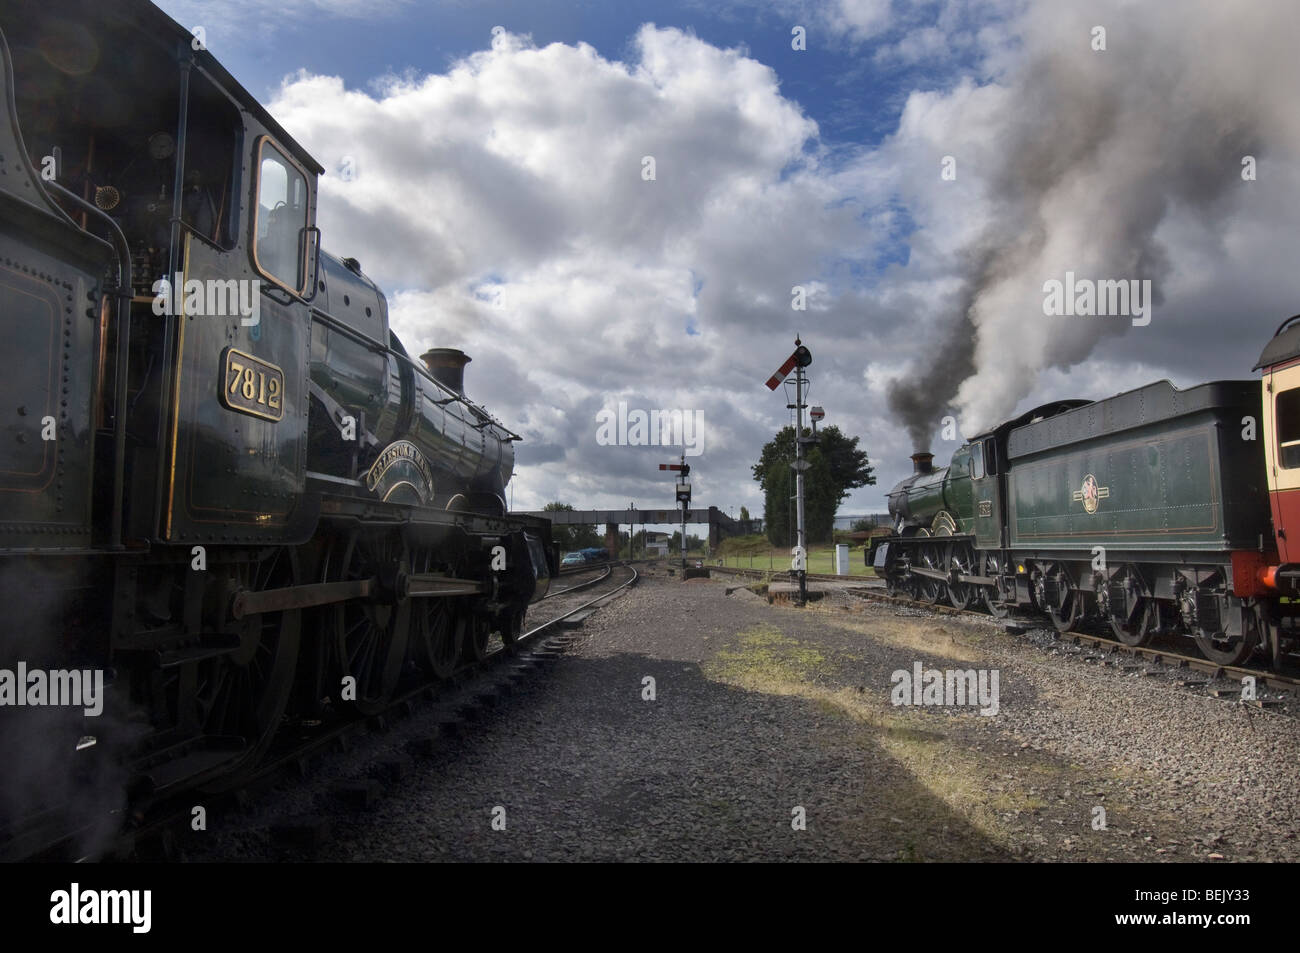 Two Great Western Railway Manor Class steam locomotives on the preserved  Severn Valley Railway at Kidderminster, - Stock Image